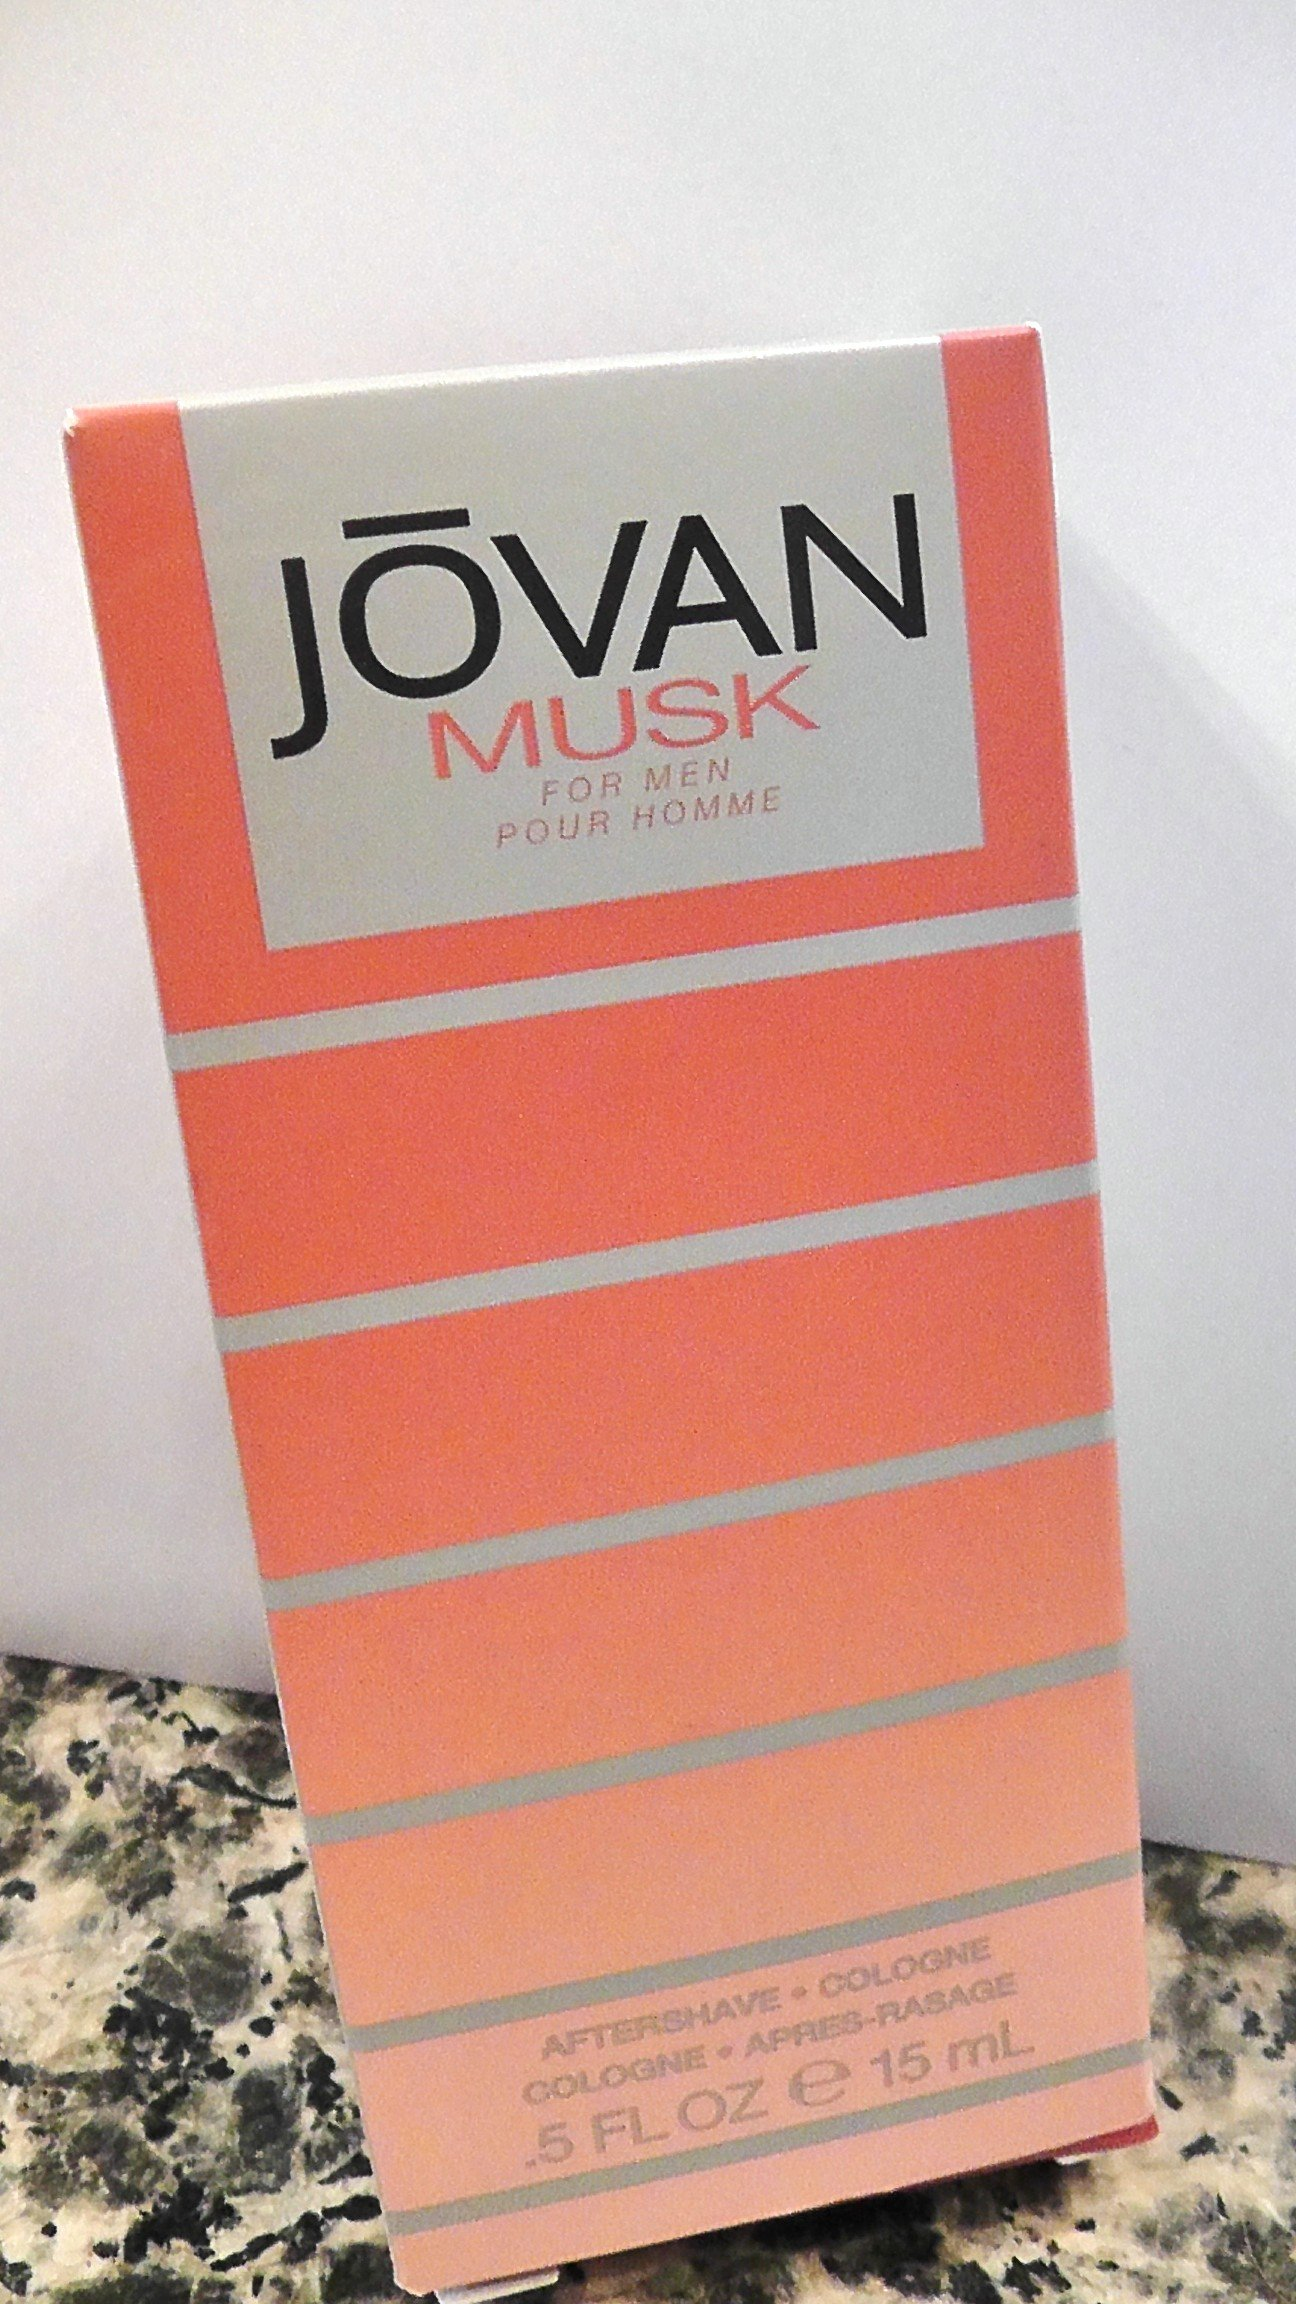 JOVAN MUSK For Men. FREE GIFT WITH YOUR ORDER!!